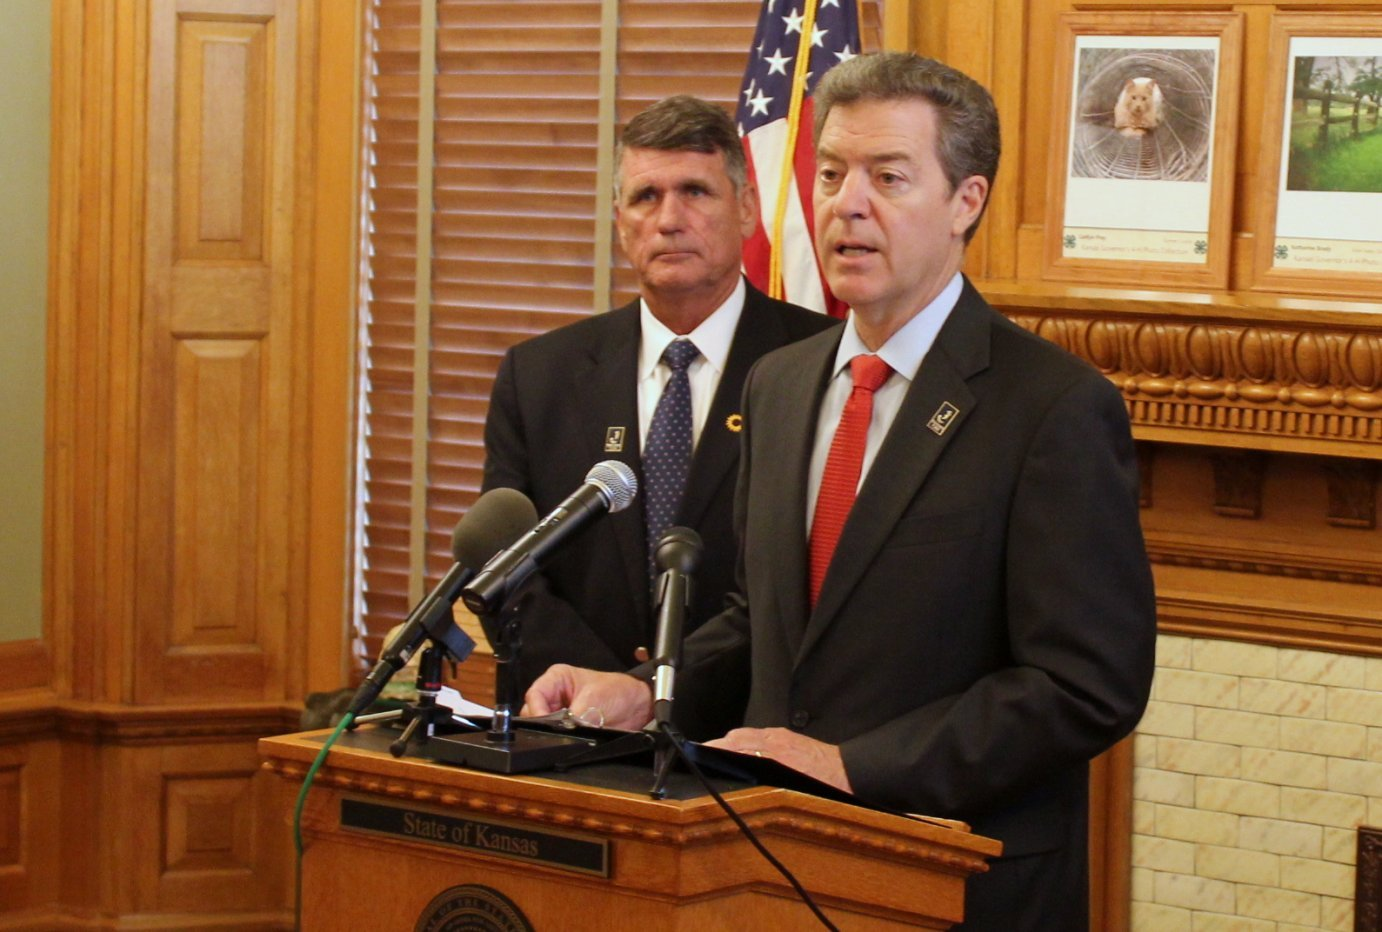 Governor Sam Brownback speaking at an event last month. (Photo by Stephen Koranda)